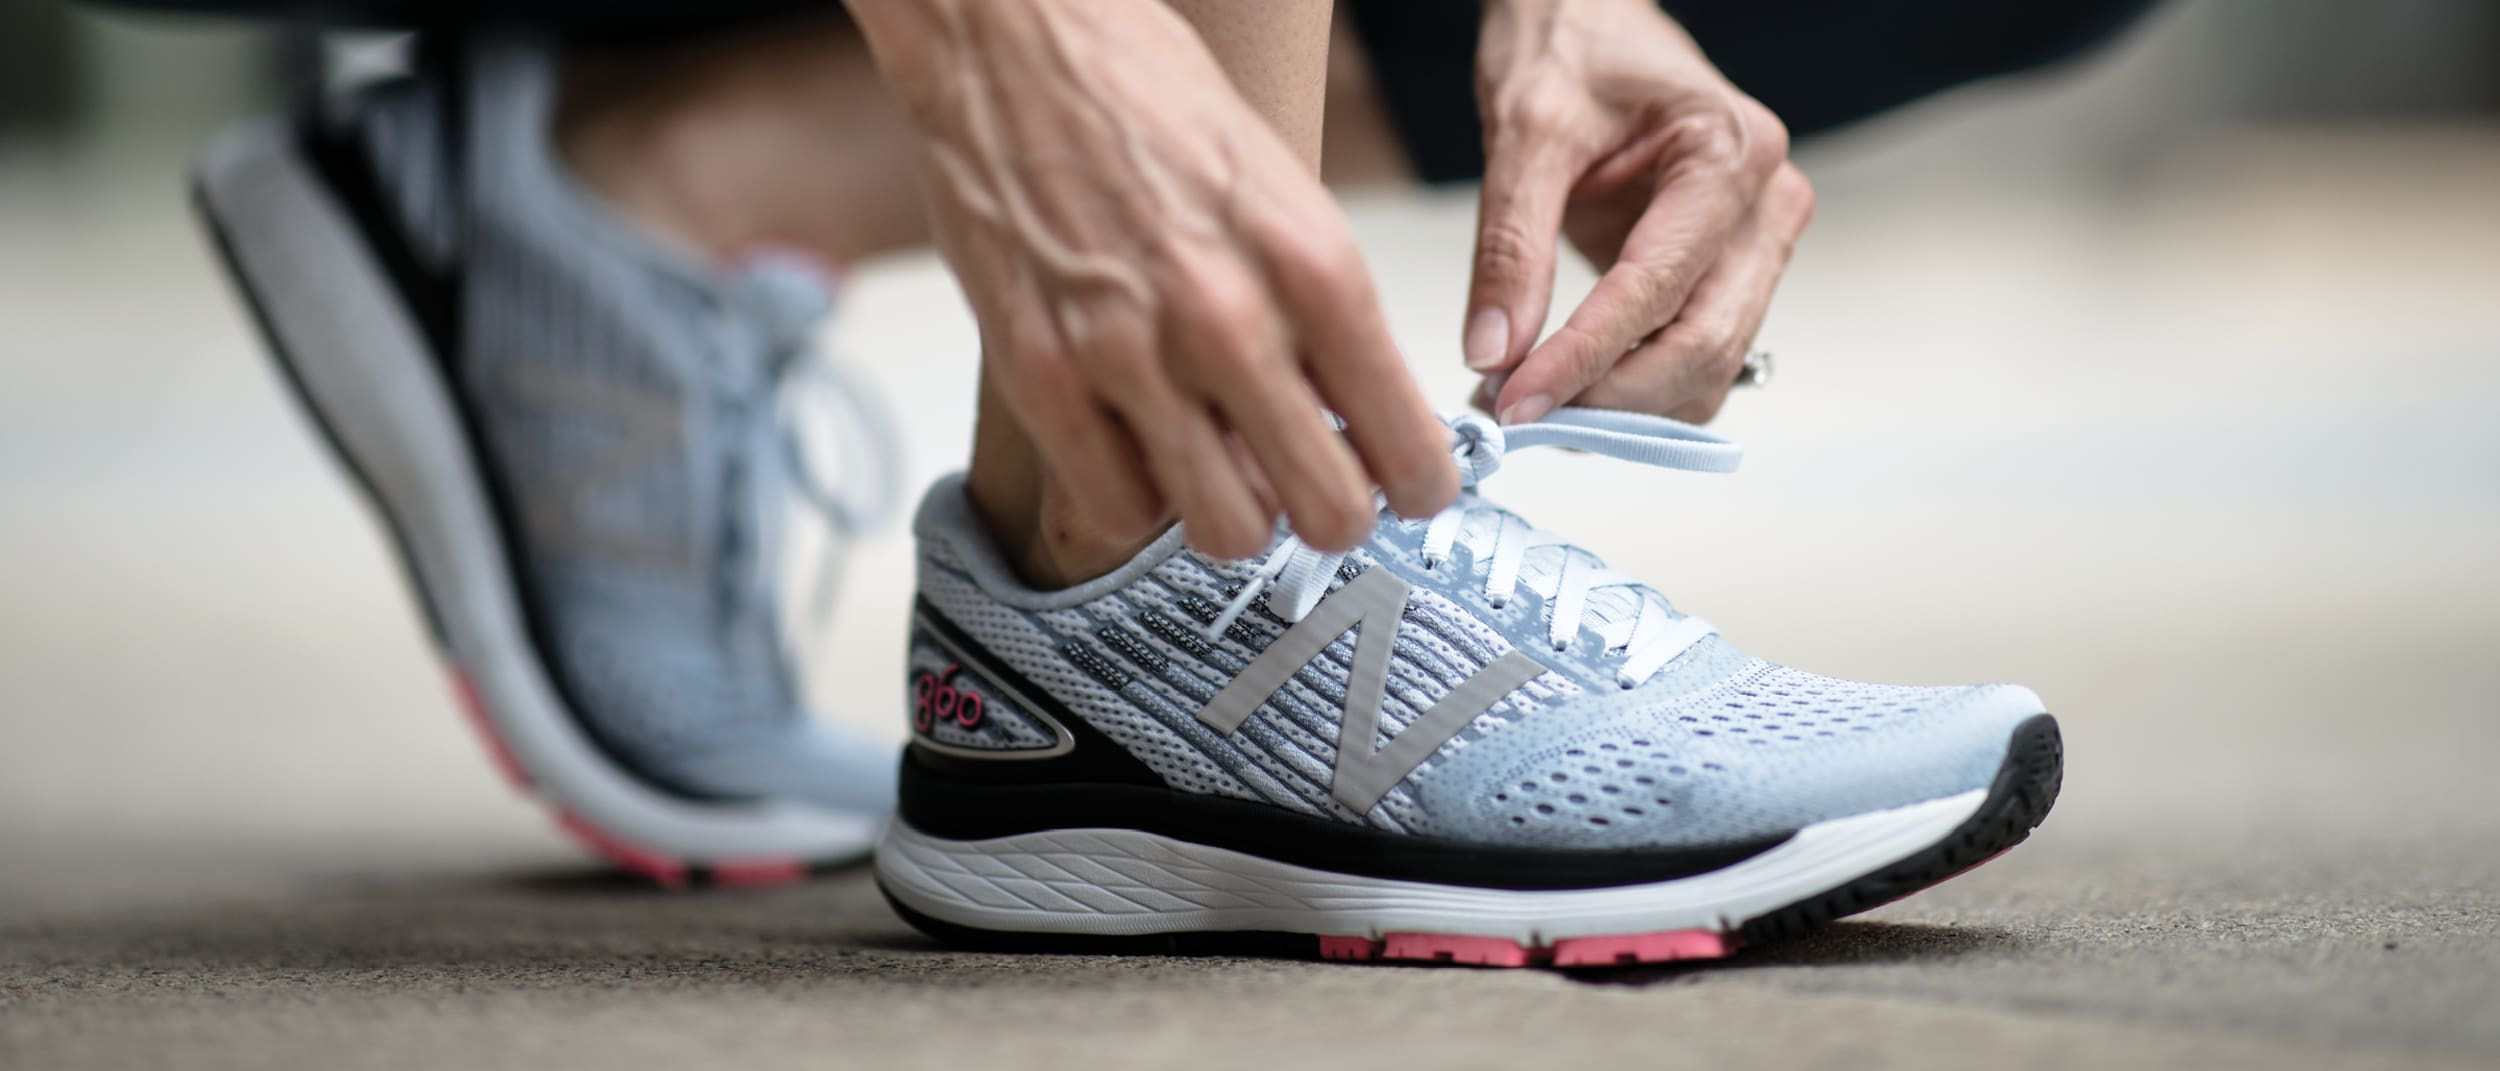 Australian first - New Balance 860v9 at The Athlete's Foot